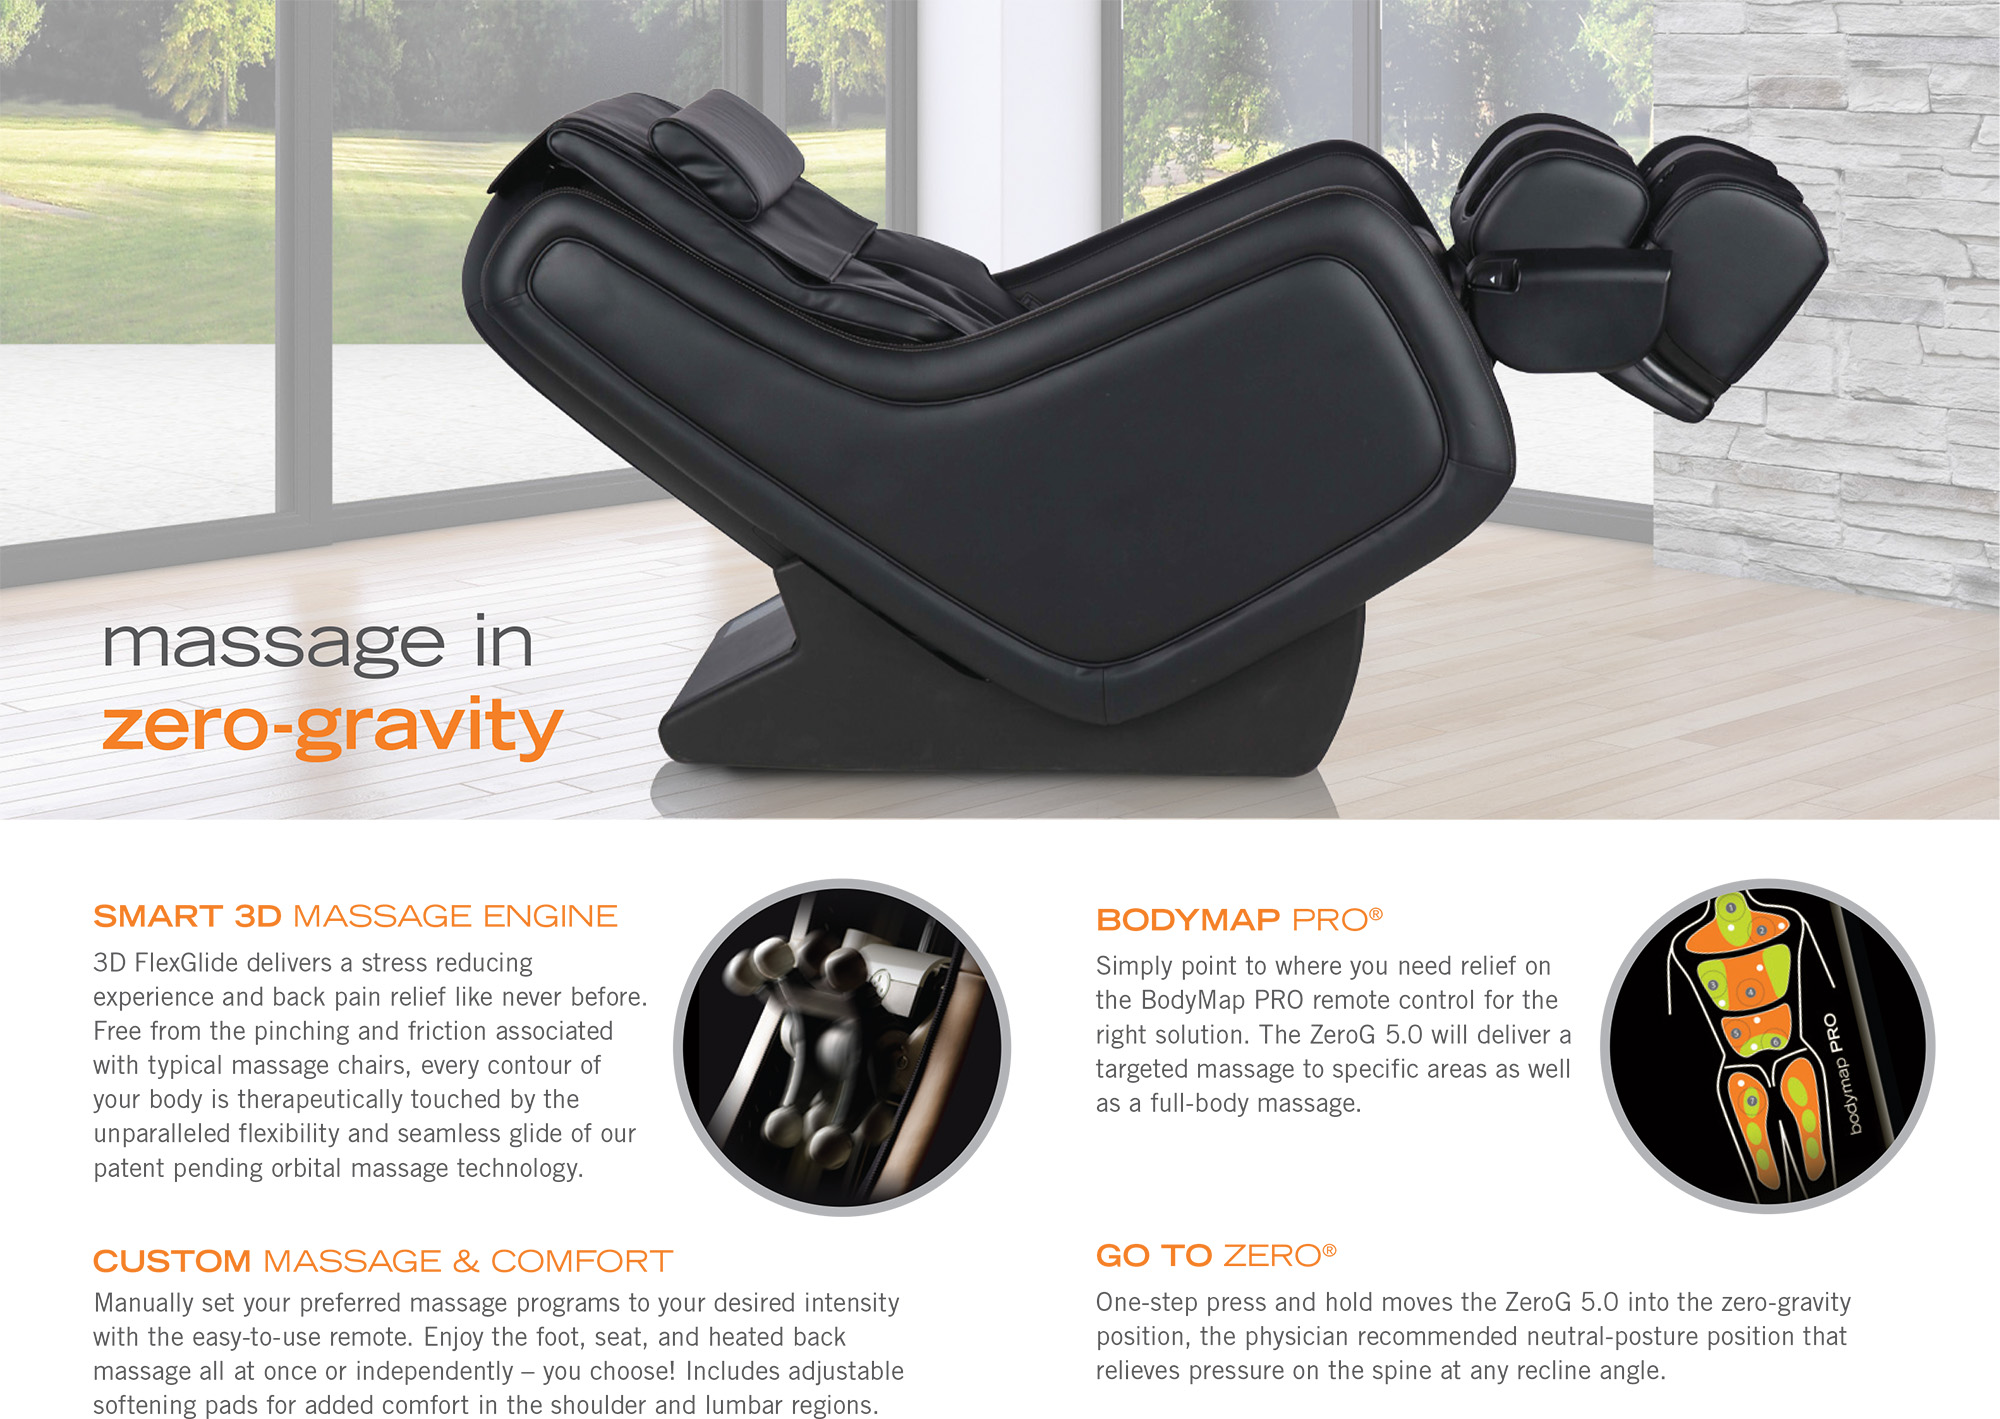 Office Chair Massager Zerog 5 Immersion Zero Gravity Massage Chair Recliner By Human Touch